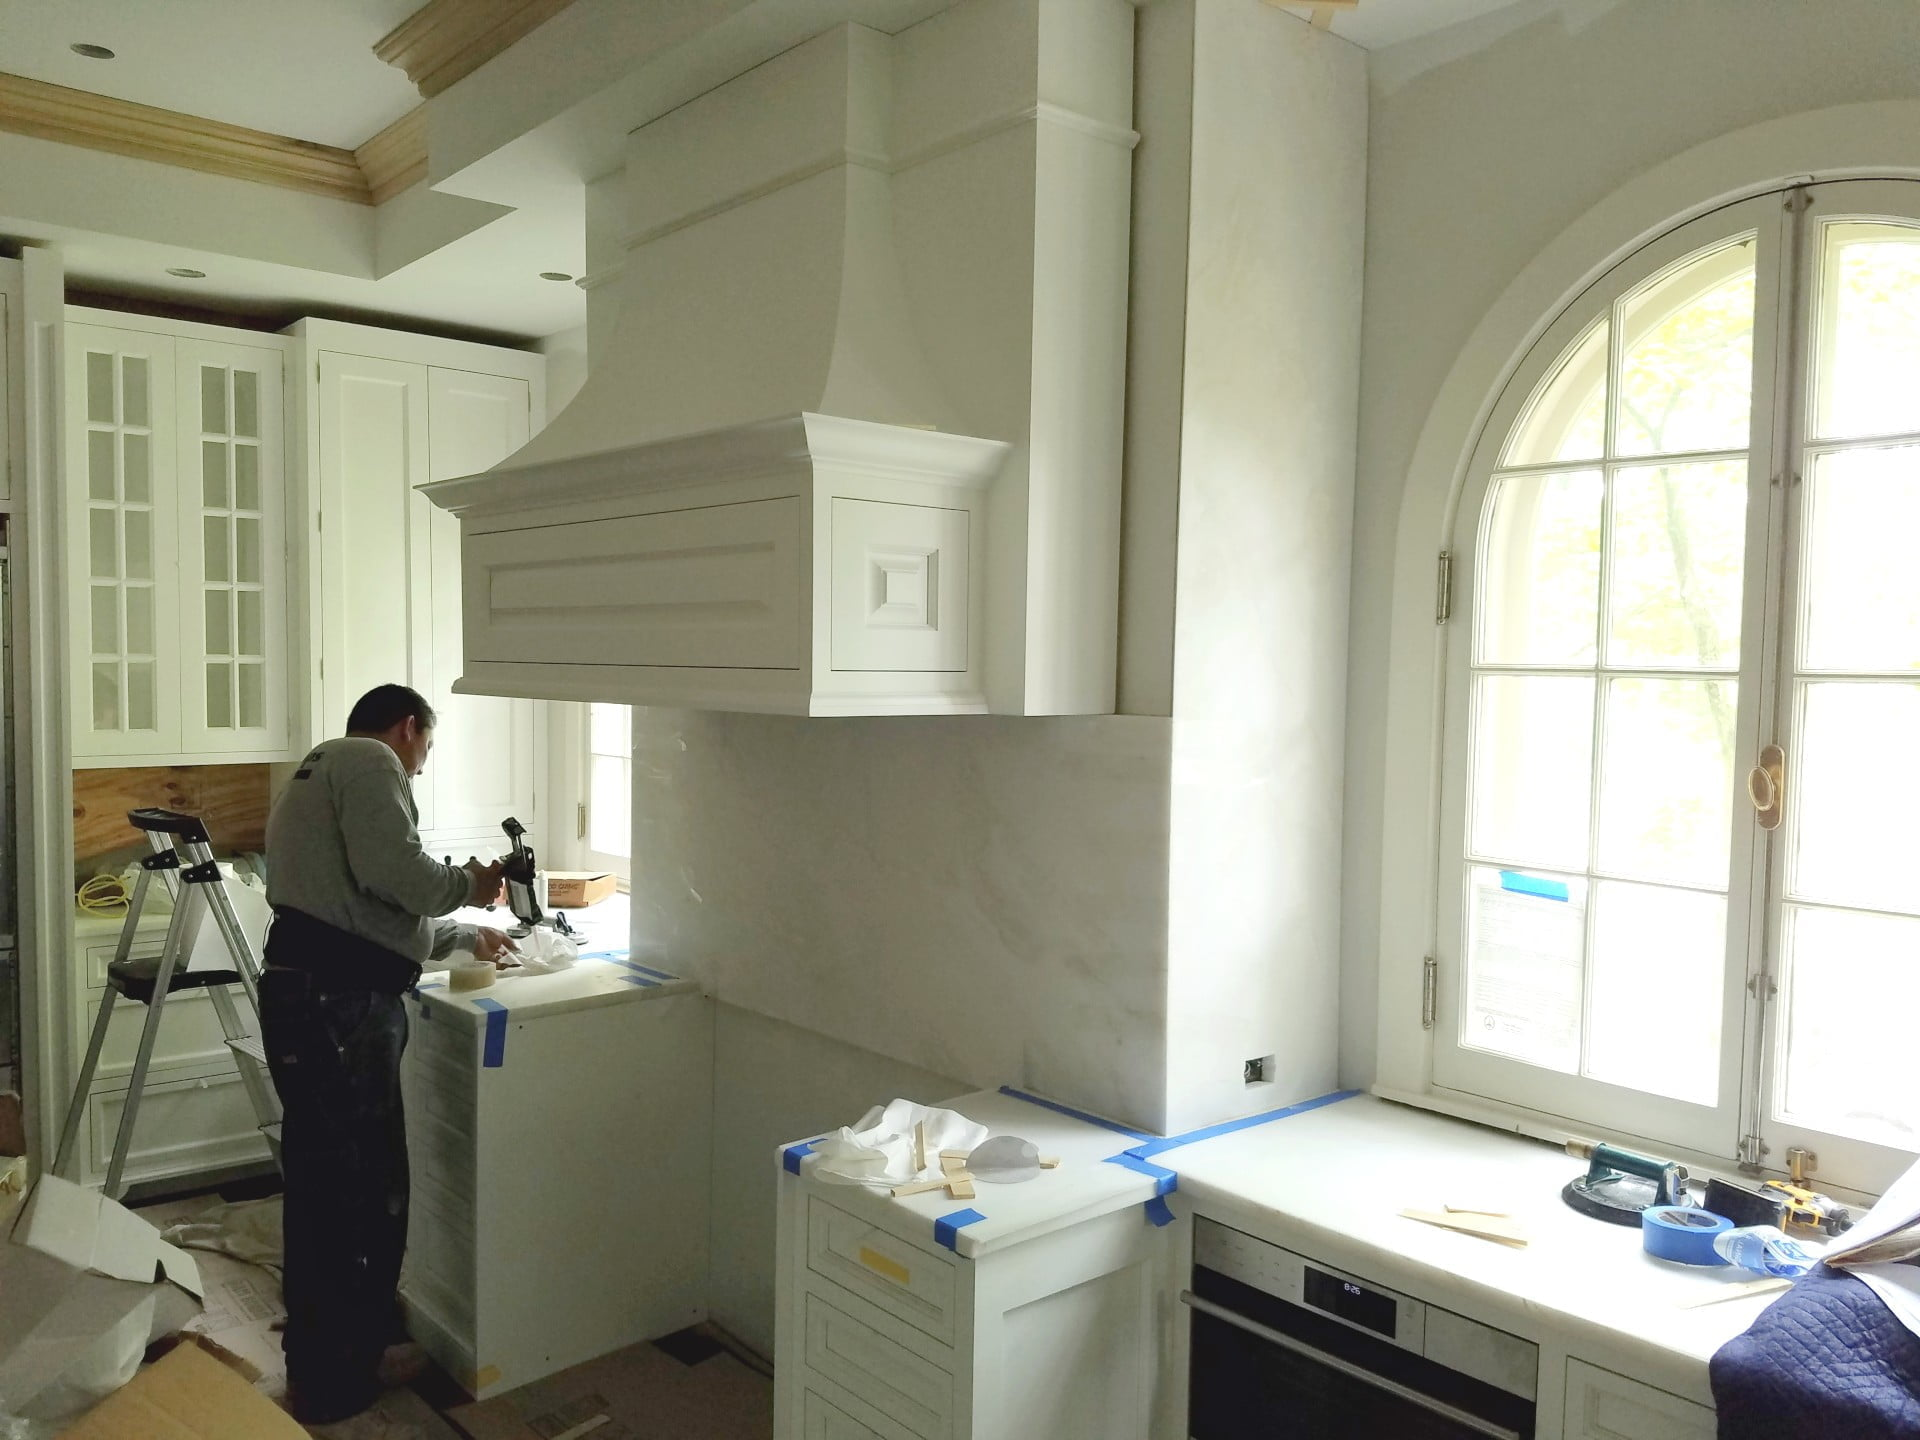 Remodeling kitchen in process